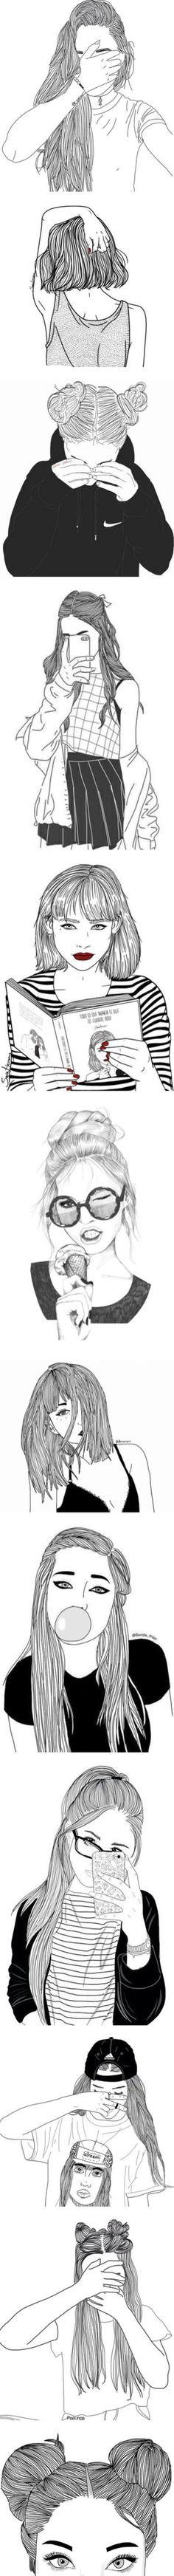 Tumblr Girl Drawings by rainst0rms on Polyvore featuring fillers, doodles, drawings, sketches, text, extras, backgrounds, outlines, phrase and quotes